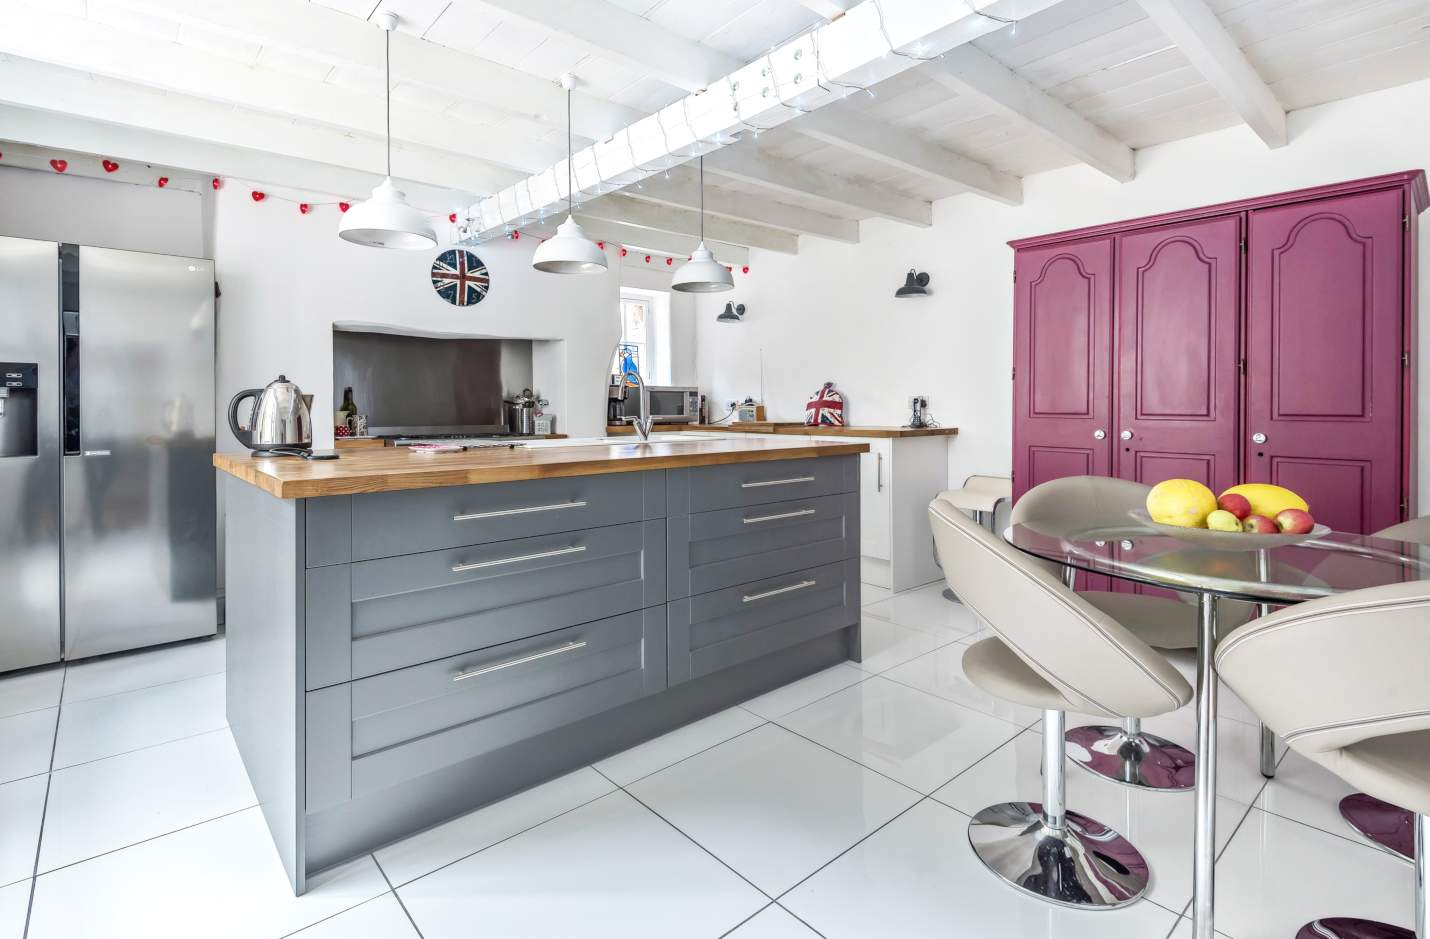 Homes for cooks: six beautiful kitchens - Stags